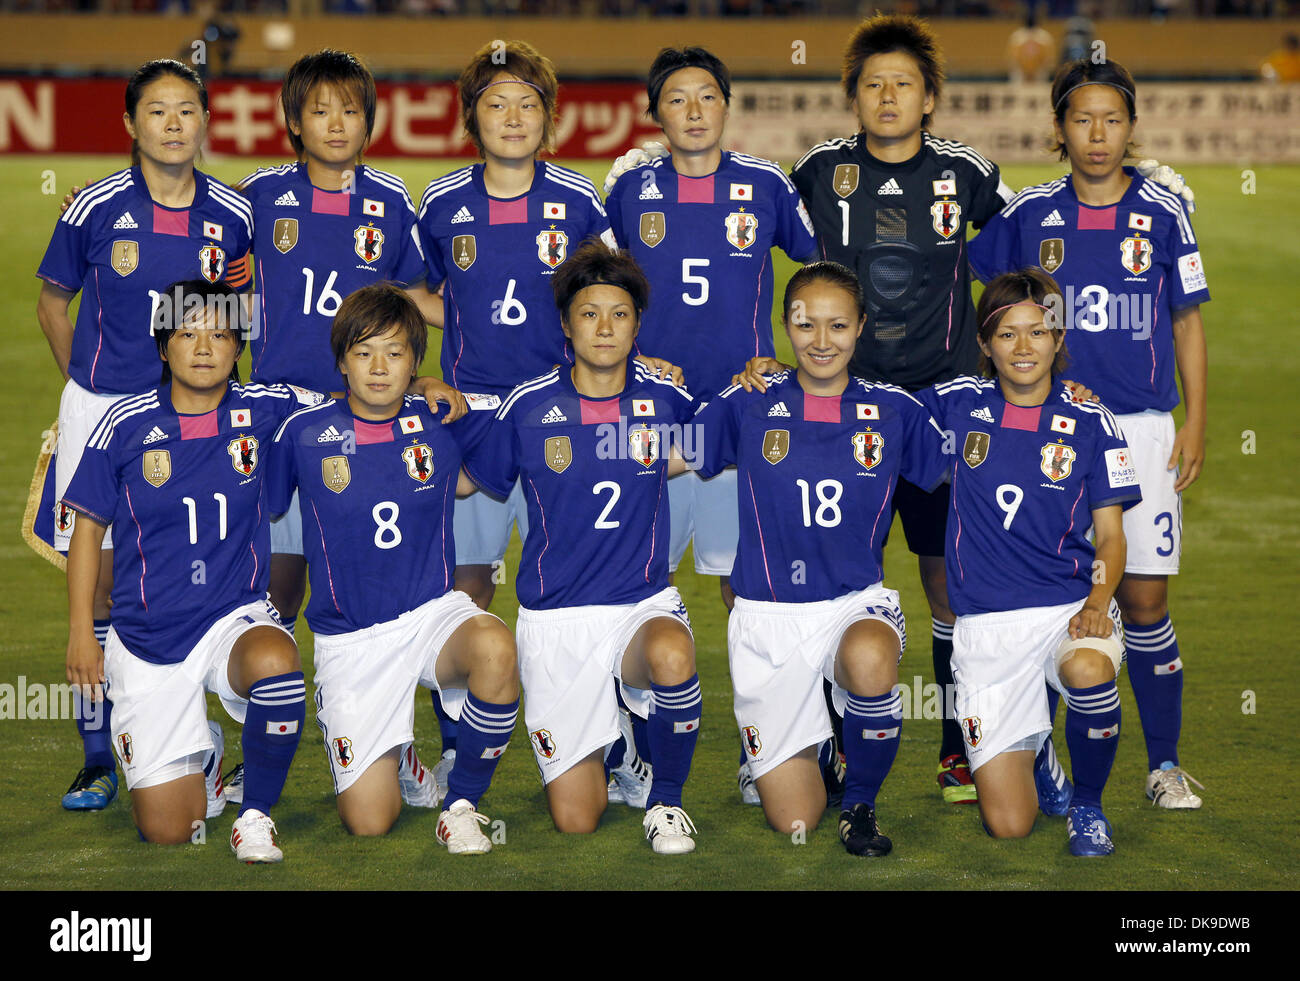 Aug. 19, 2011 - Tokyo, Japan - Players of Japan Women's National Team pose for photographs during the charity match for the earthquake and tsunami victims at the National Stadium in Tokyo, Japan. Japan Women's National Team defeated Nadeshiko League Team by 3-2. (Credit Image: © Shugo Takemi/Jana Press/ZUMAPRESS.com) - Stock Image